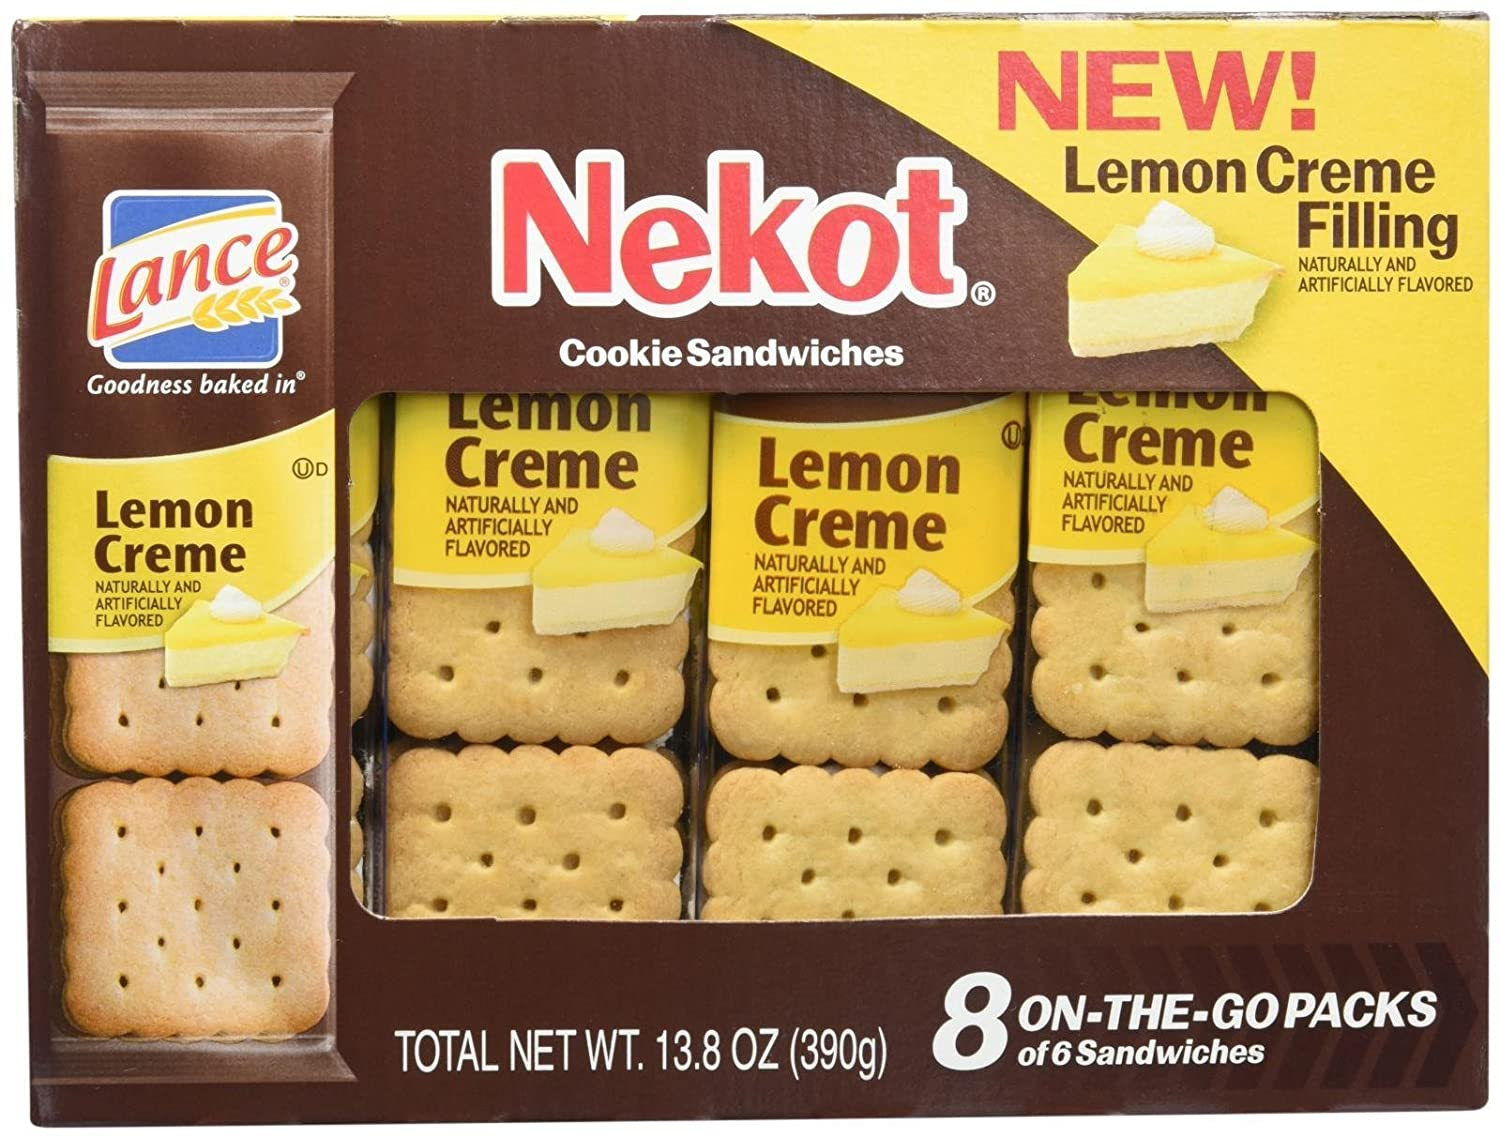 Lance Nekot Cookie Sandwiches Lemon Creme Filling - 8 CT